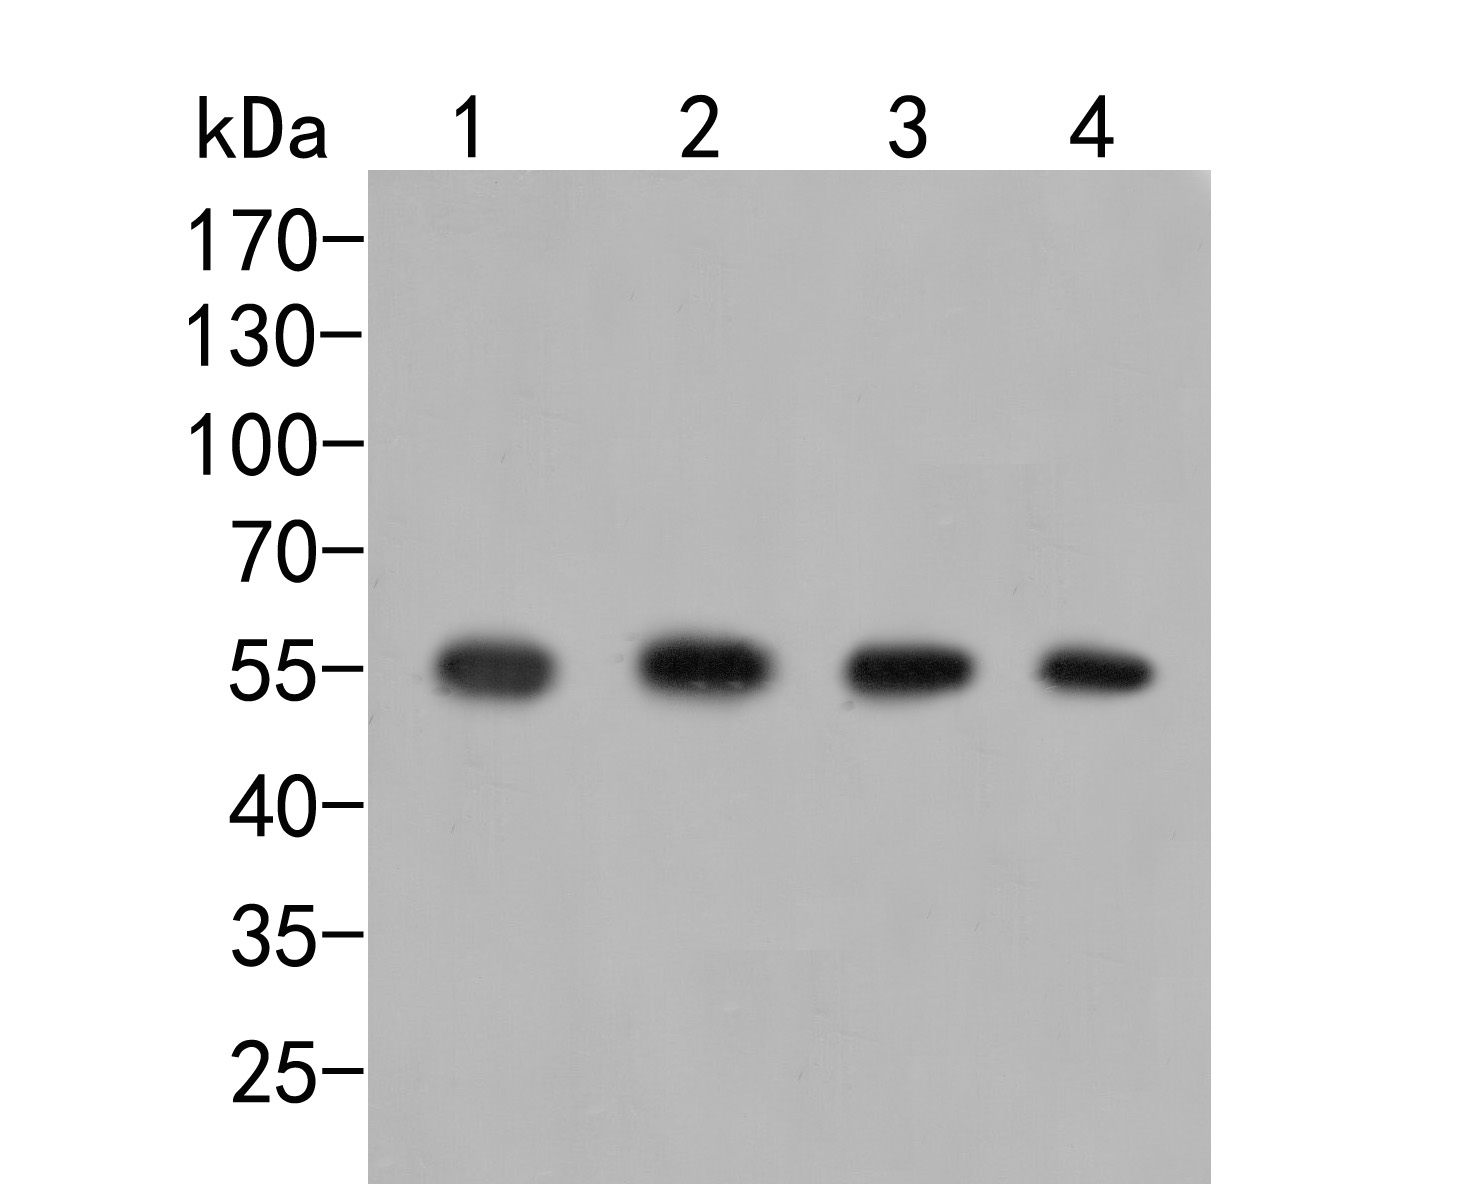 Western blot analysis of GRK1 on different lysates. Proteins were transferred to a PVDF membrane and blocked with 5% BSA in PBS for 1 hour at room temperature. The primary antibody (ER2001-72, 1/500) was used in 5% BSA at room temperature for 2 hours. Goat Anti-Rabbit IgG - HRP Secondary Antibody (HA1001) at 1:5,000 dilution was used for 1 hour at room temperature.<br />  Positive control: <br />  Lane 1: Mouse marrow tissue lysate<br />  Lane 2: HUVEC cell lysate<br />  Lane 3: 293 cell lysate<br />  Lane 4: Rat marrow tissue lysate